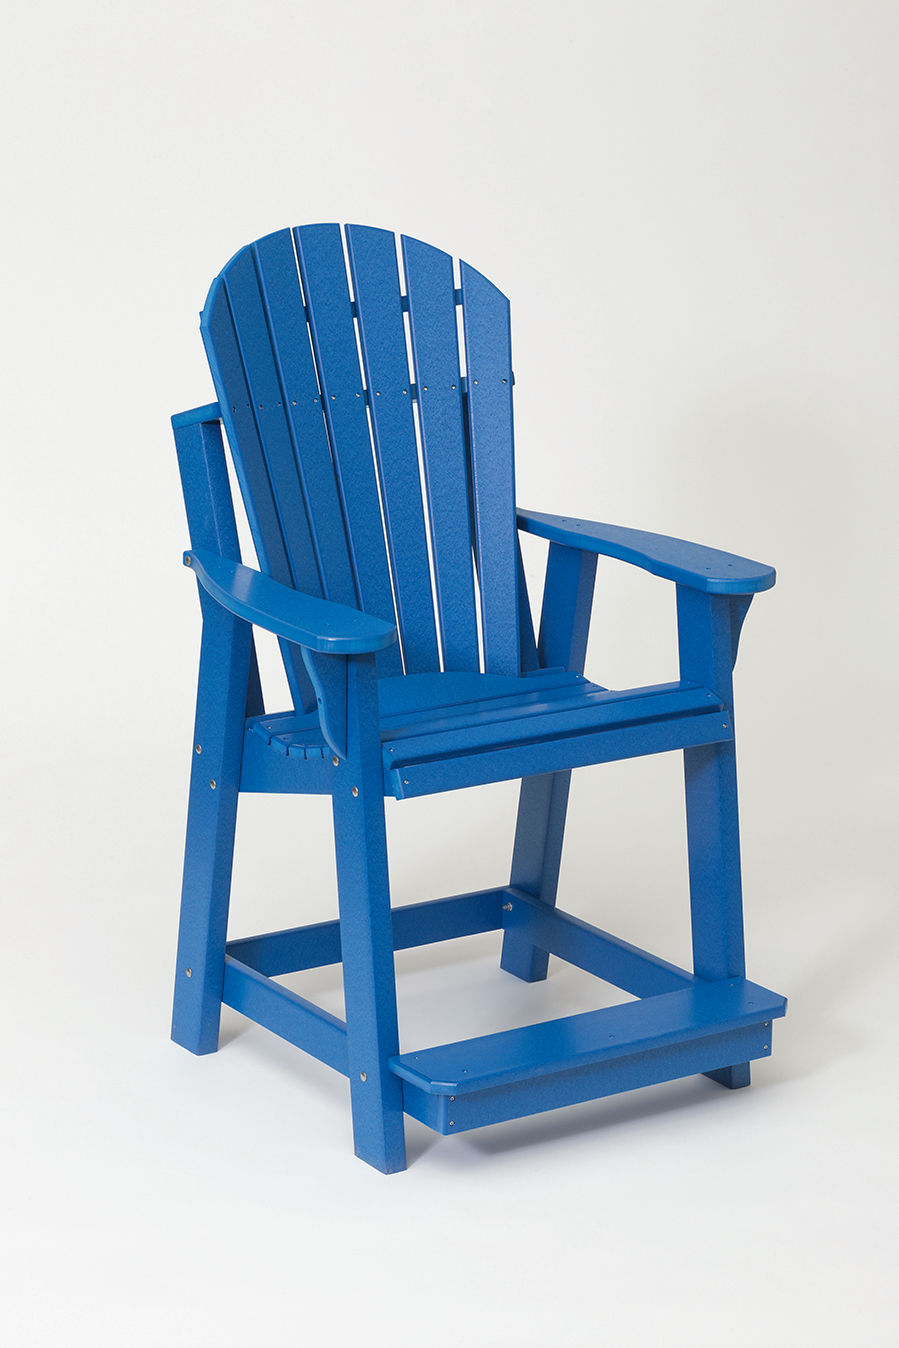 Photo of: FWK Adirondack Cafe Chair-Poly